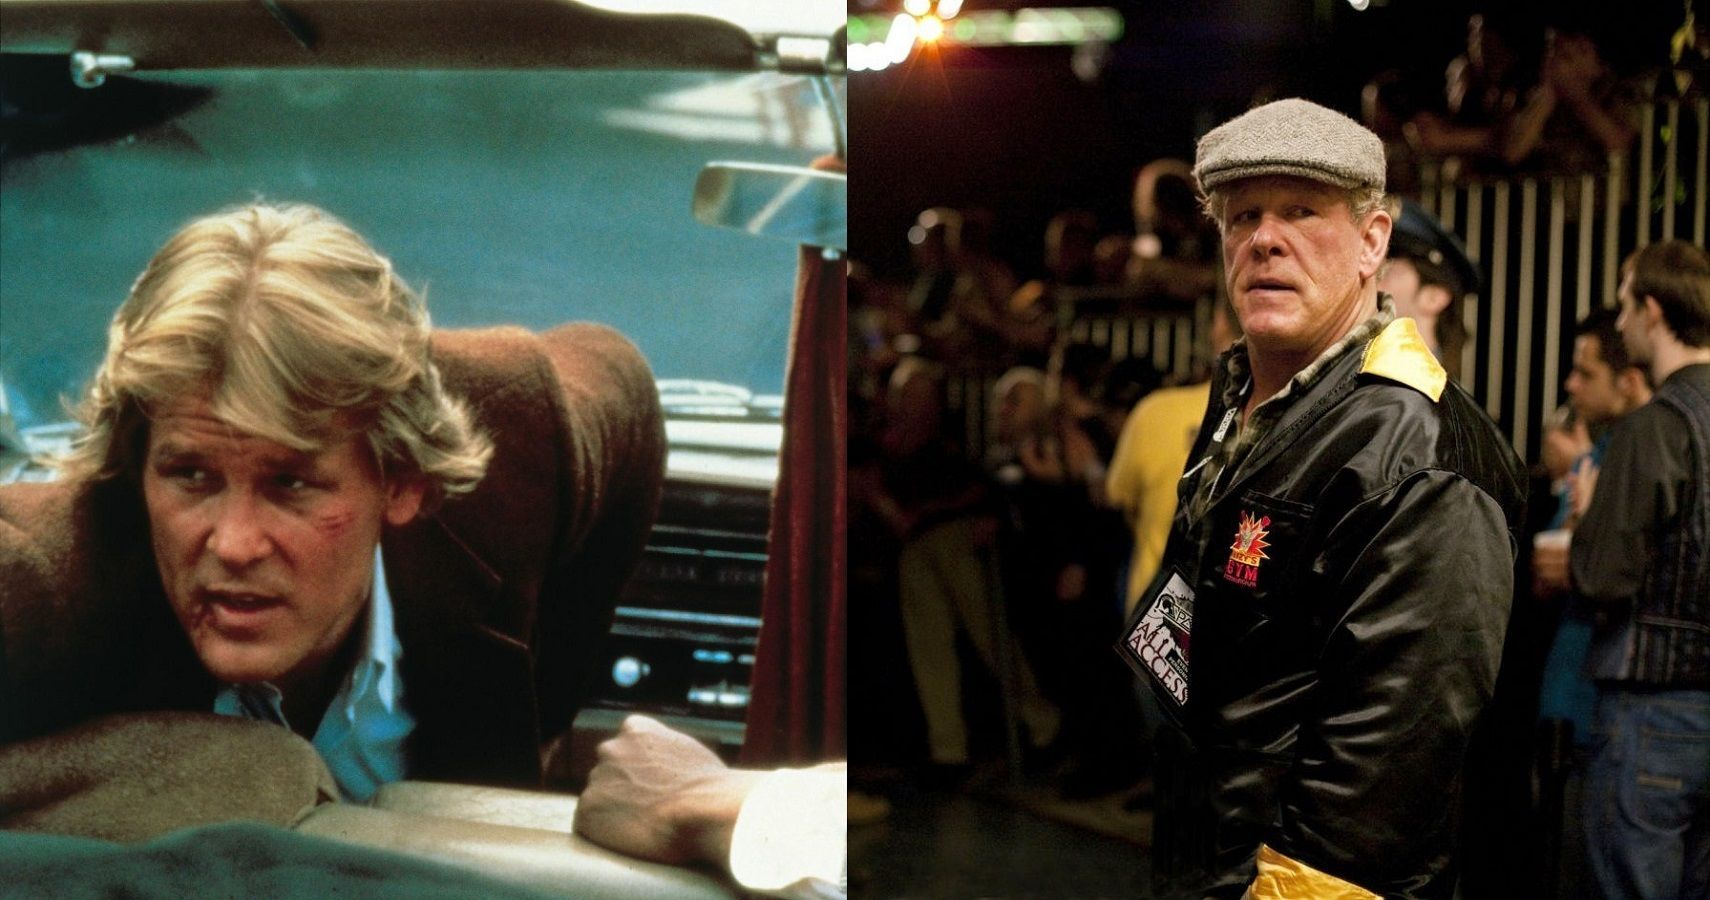 Nick Nolte's 10 Best Movies, According To Rotten Tomatoes